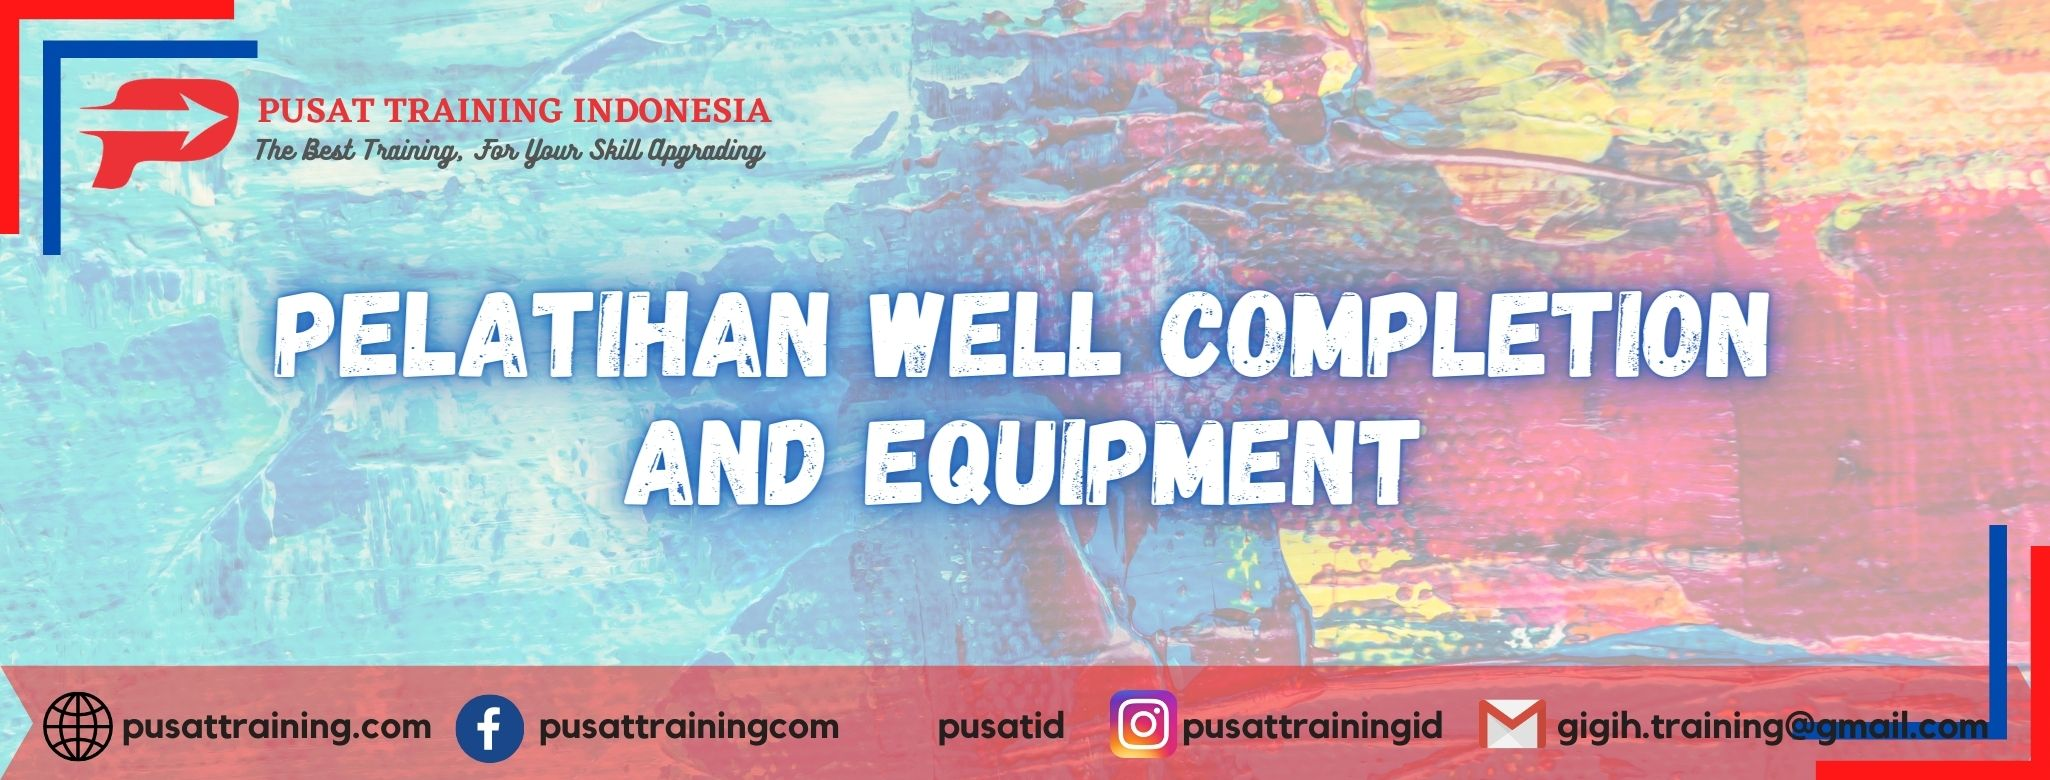 pelatihan-well-completition-and-equipmnent